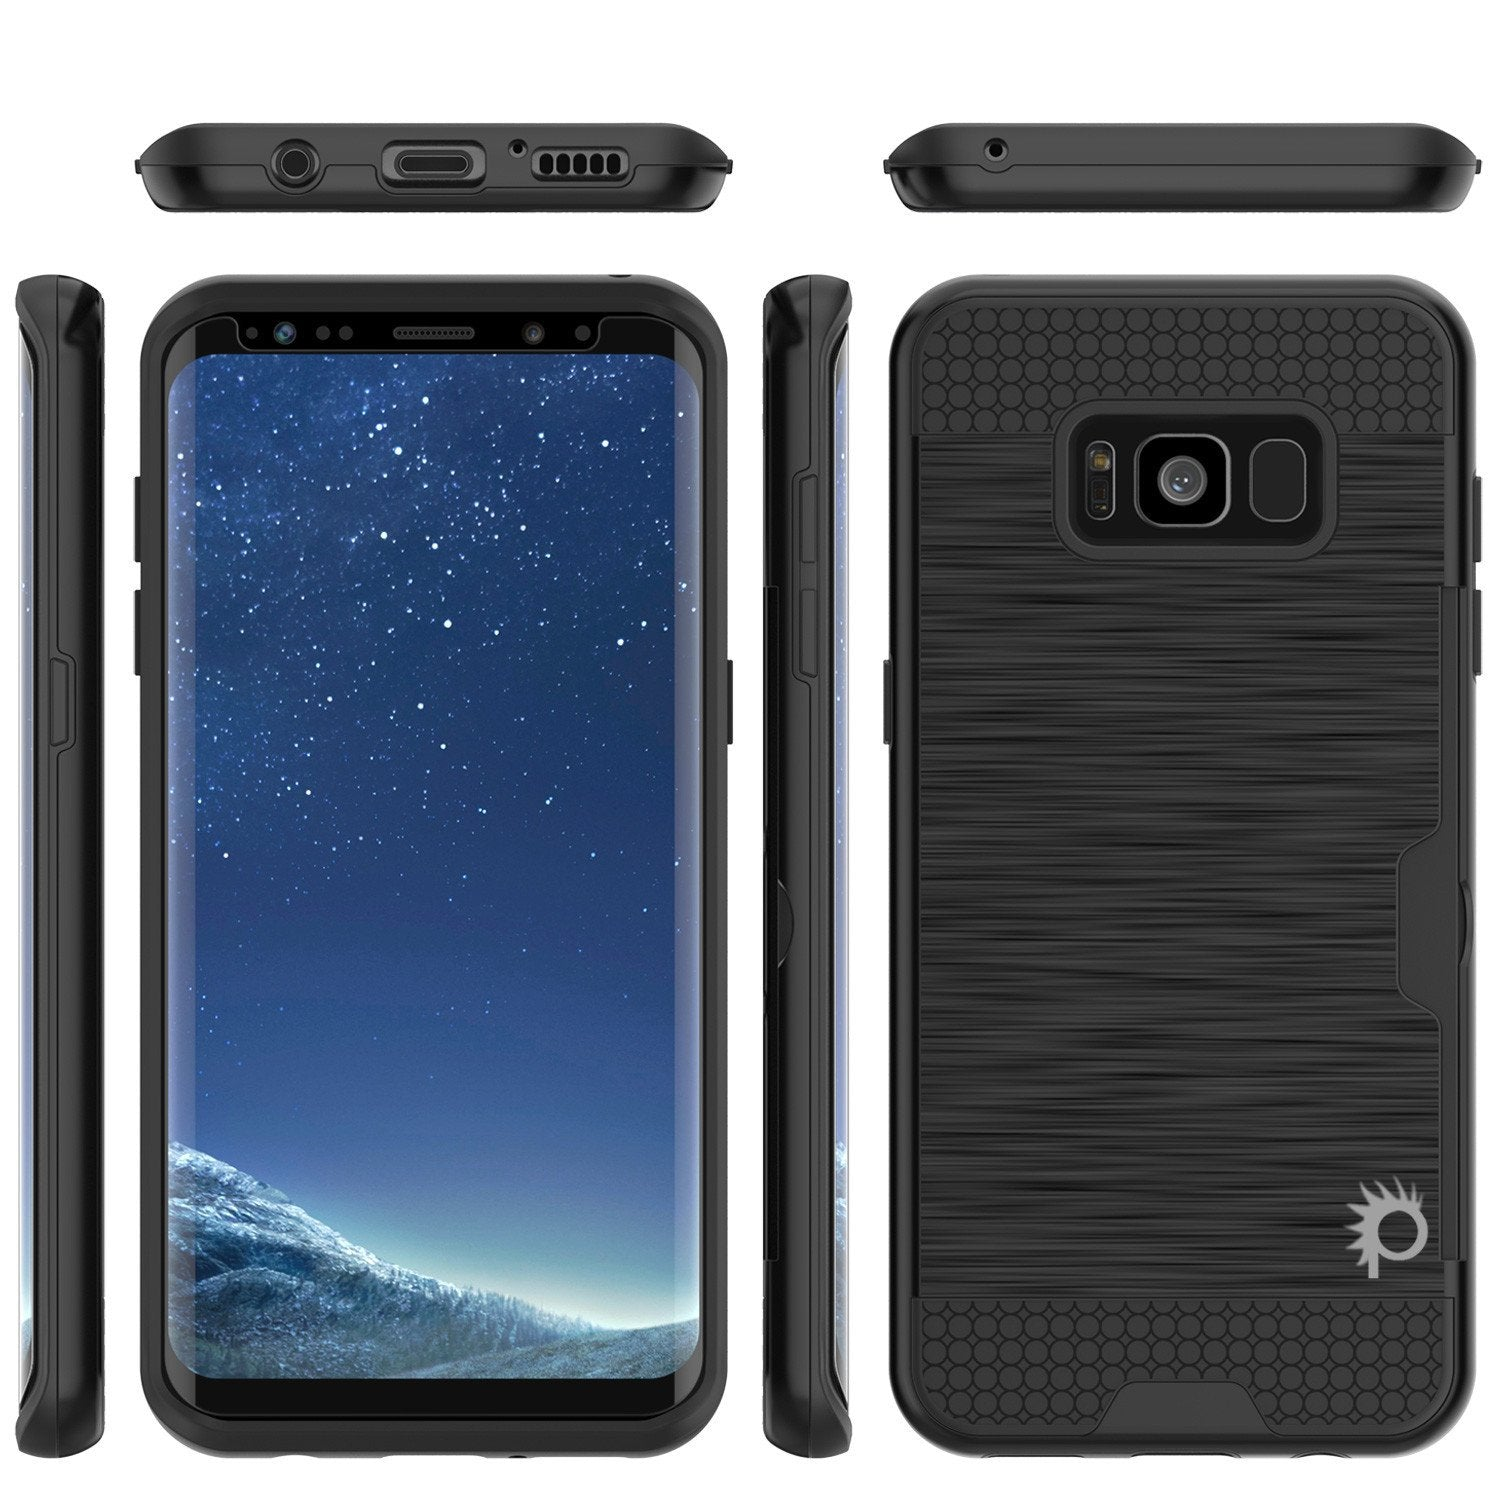 Galaxy S8 Plus Dual-Layer, Anti-Shock, SLOT Series Case [Black]